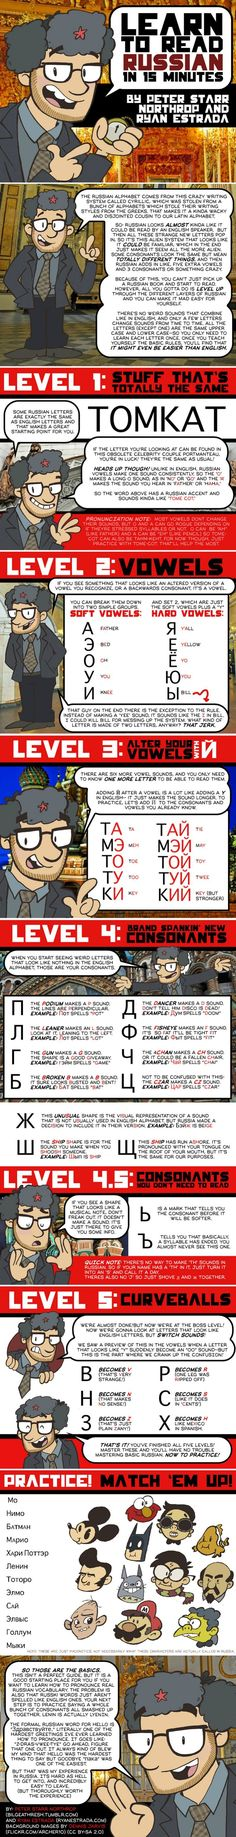 Learn to Read Russian in 15 Minutes! - Imgur